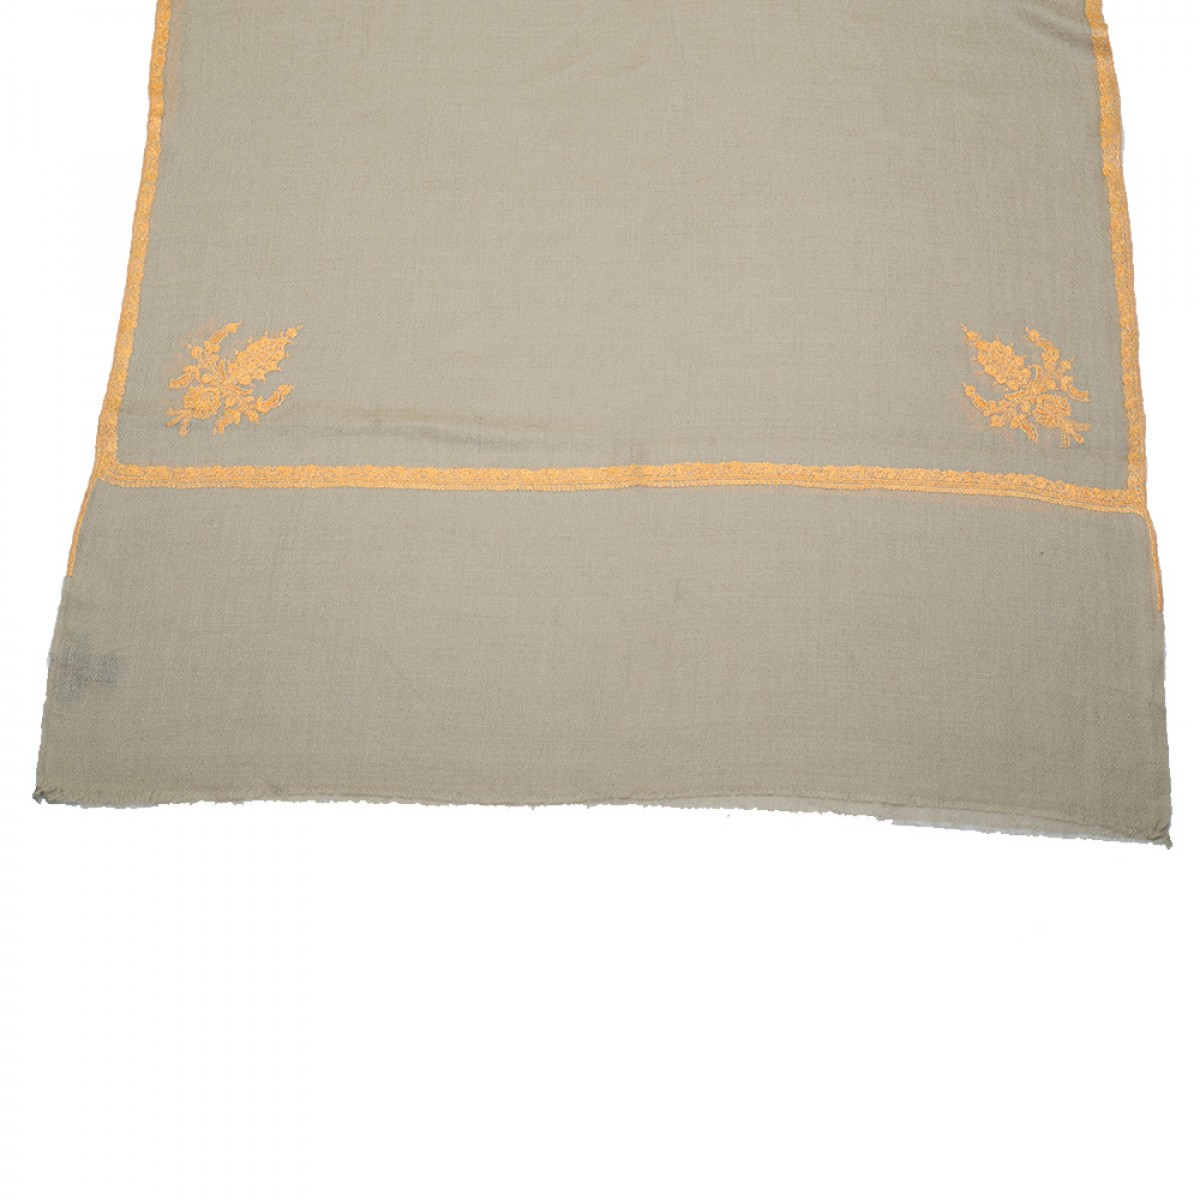 Embroidered Pashmina stole - Natural & Yellow